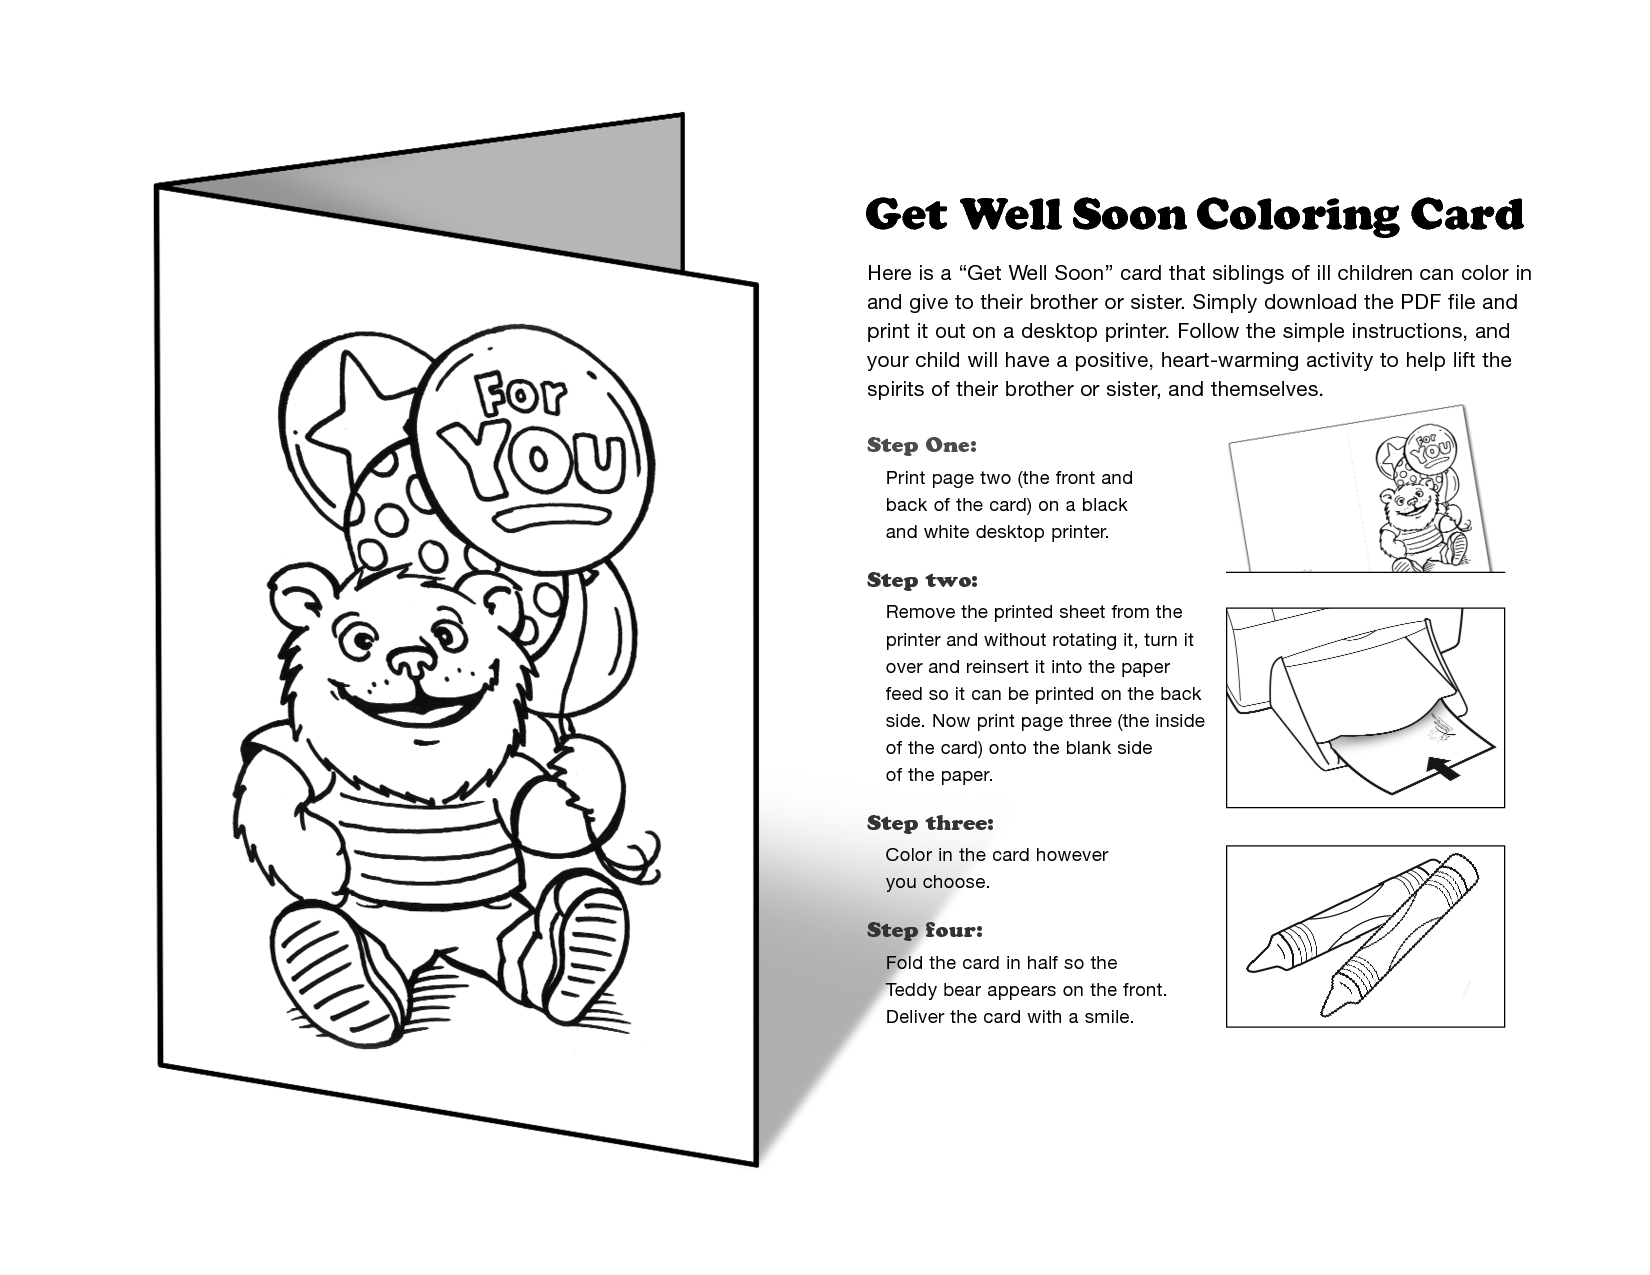 Free Printable Get Well Cards To Color - Printable Cards - Free Printable Cards To Color